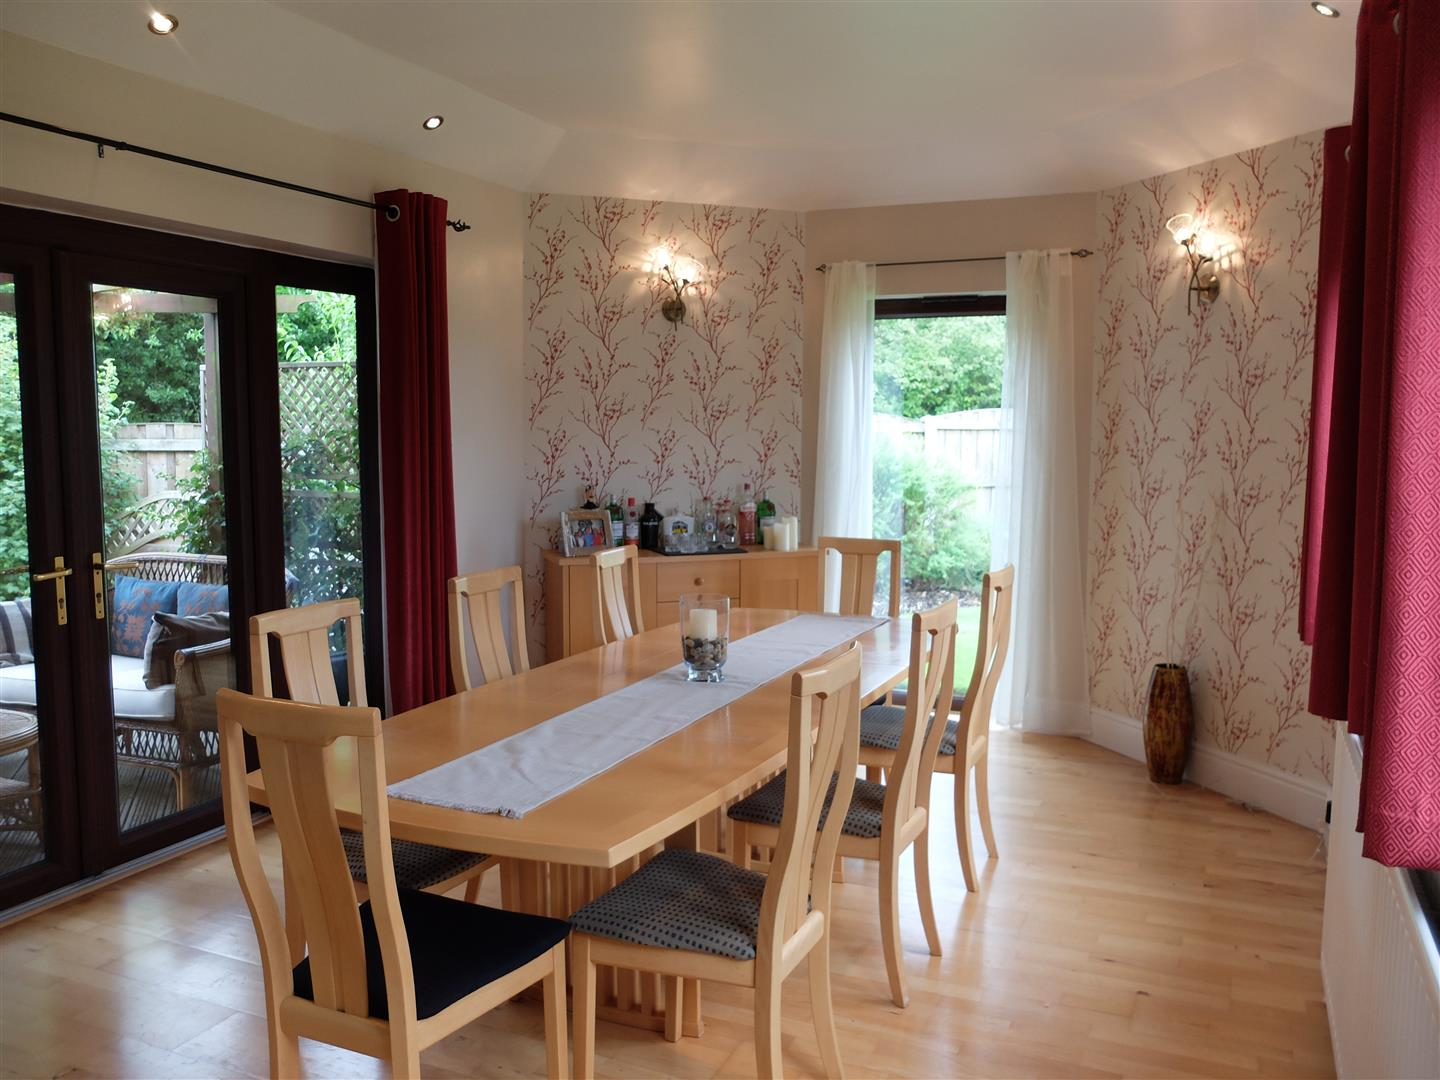 4 Bedrooms House - Detached For Sale Beech Croft Ghyll Road Carlisle